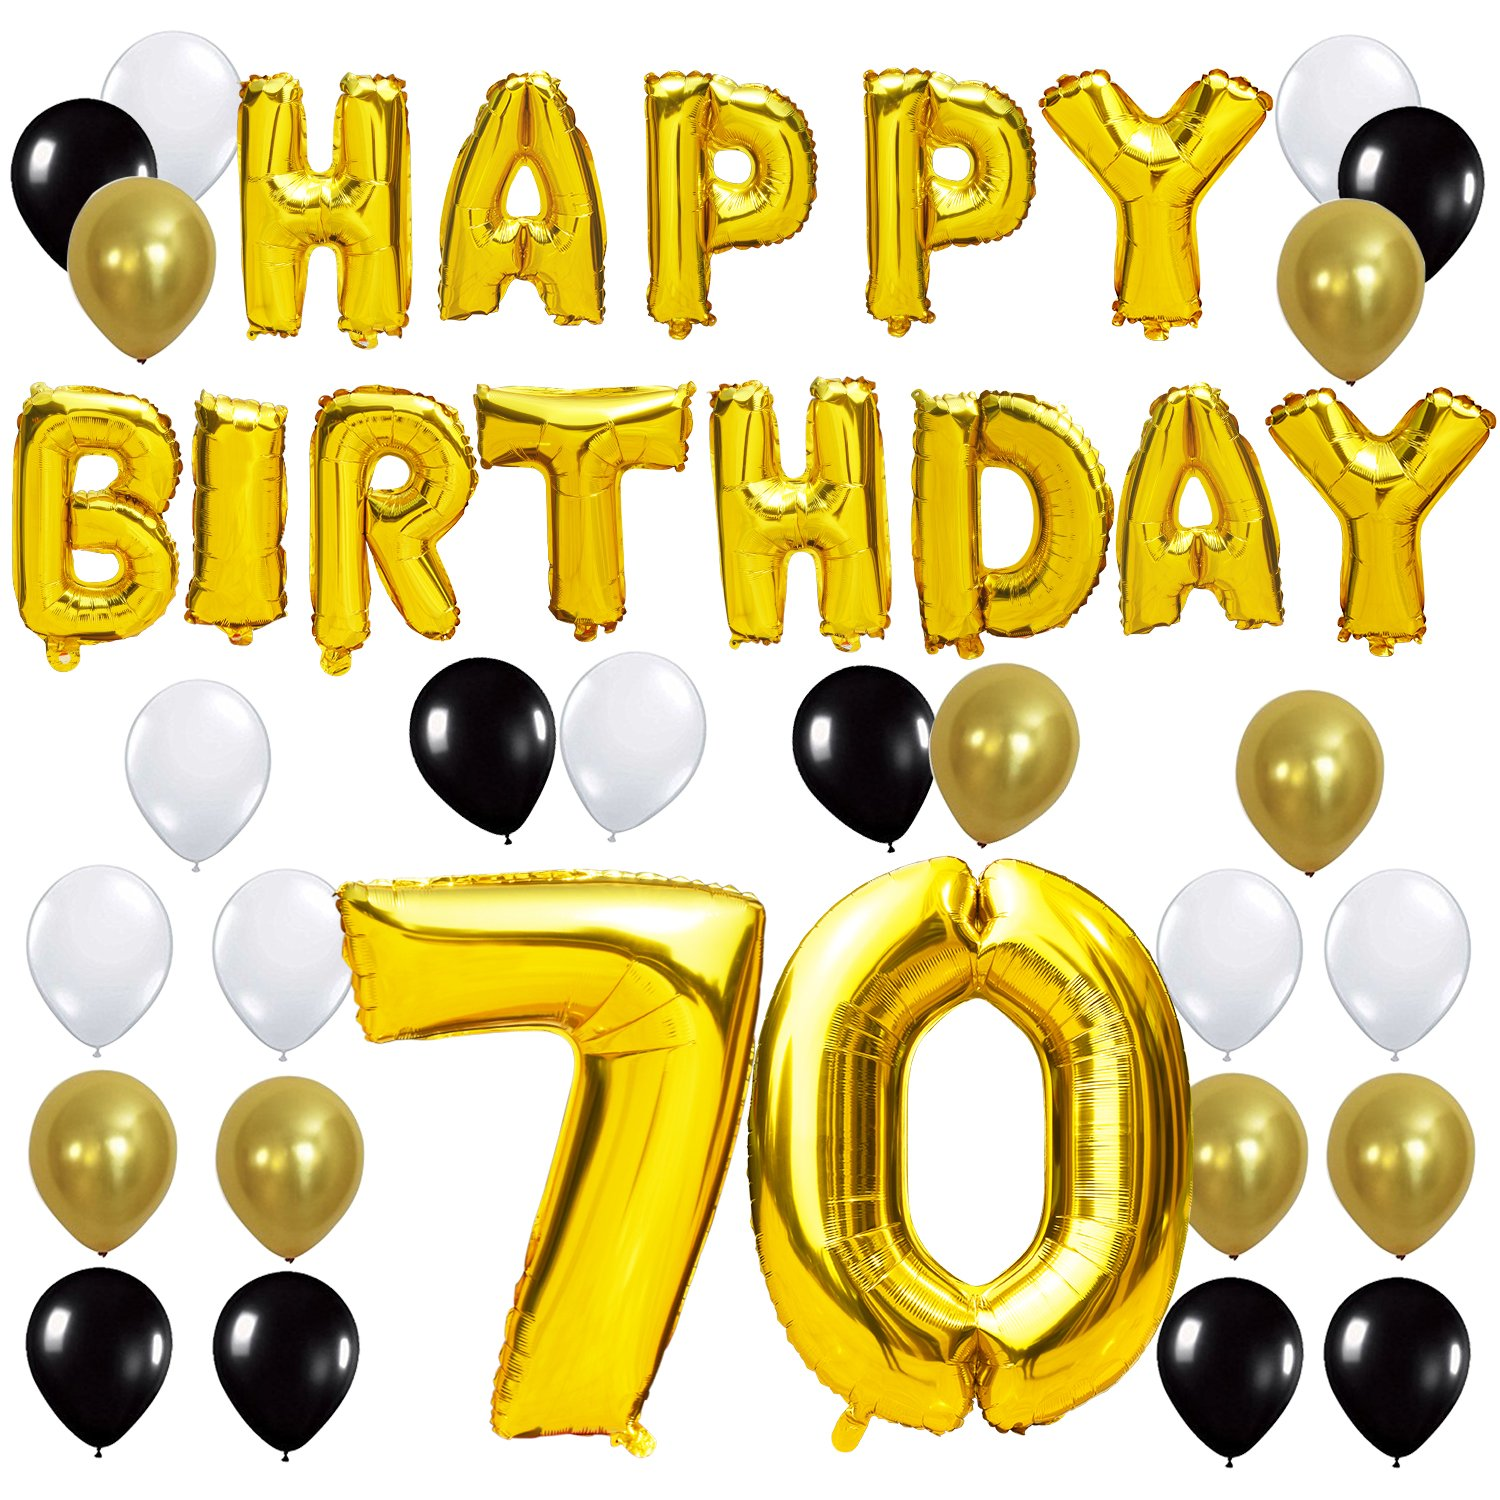 KUNGYO 70TH Birthday Party Decorations Kit